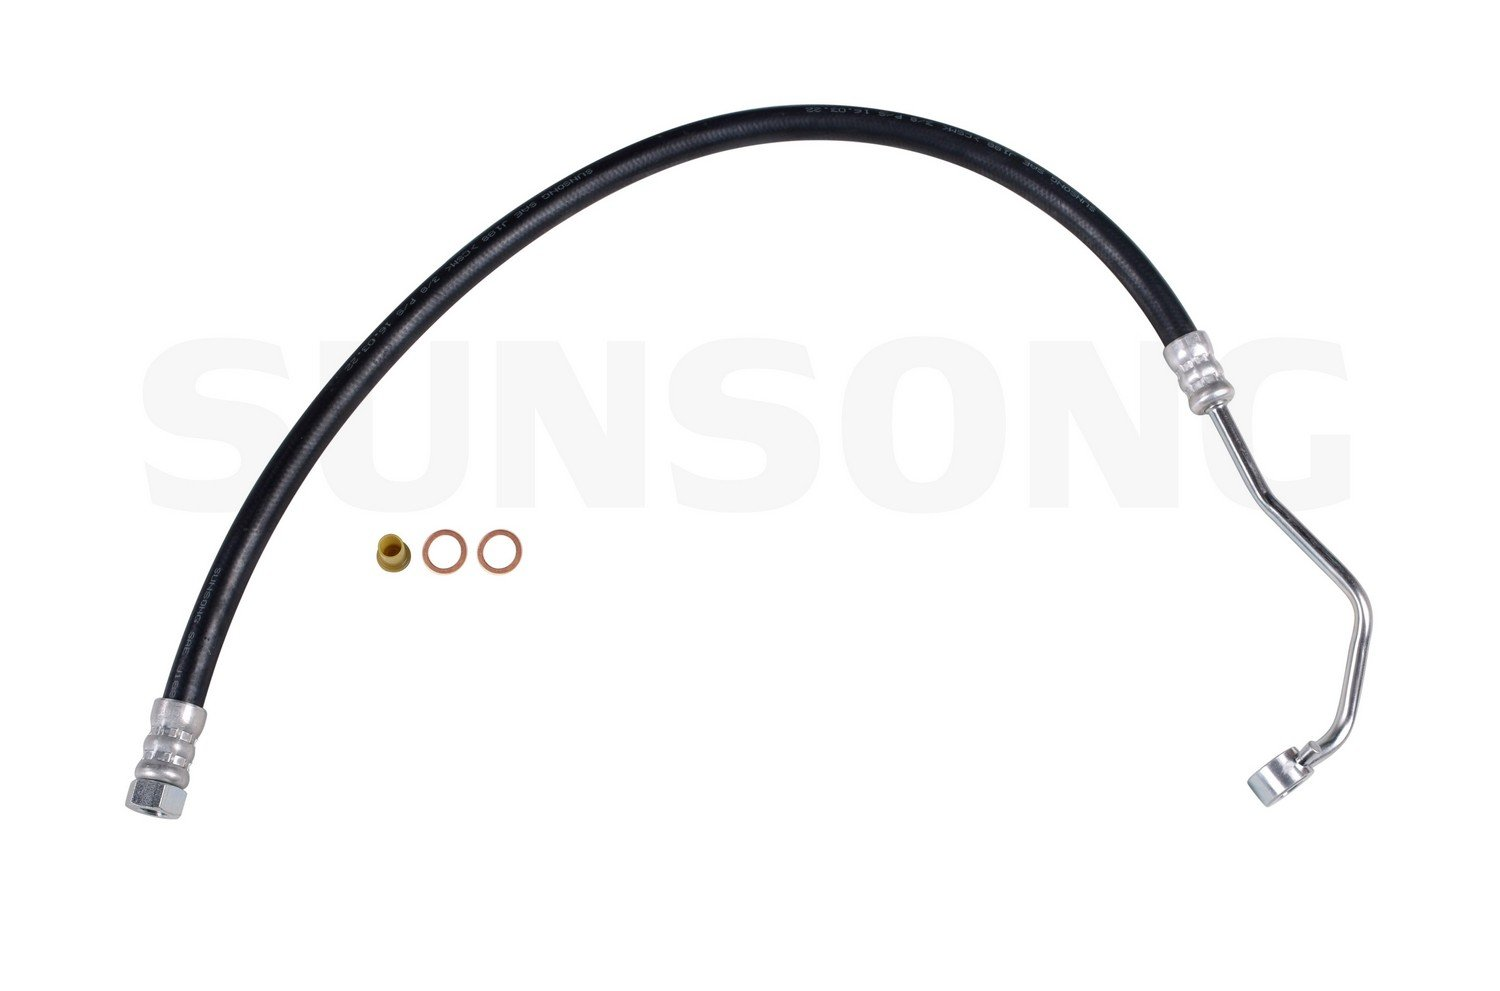 Hyundai Sunsong 3402559 Power Steering Pressure Hose Assembly